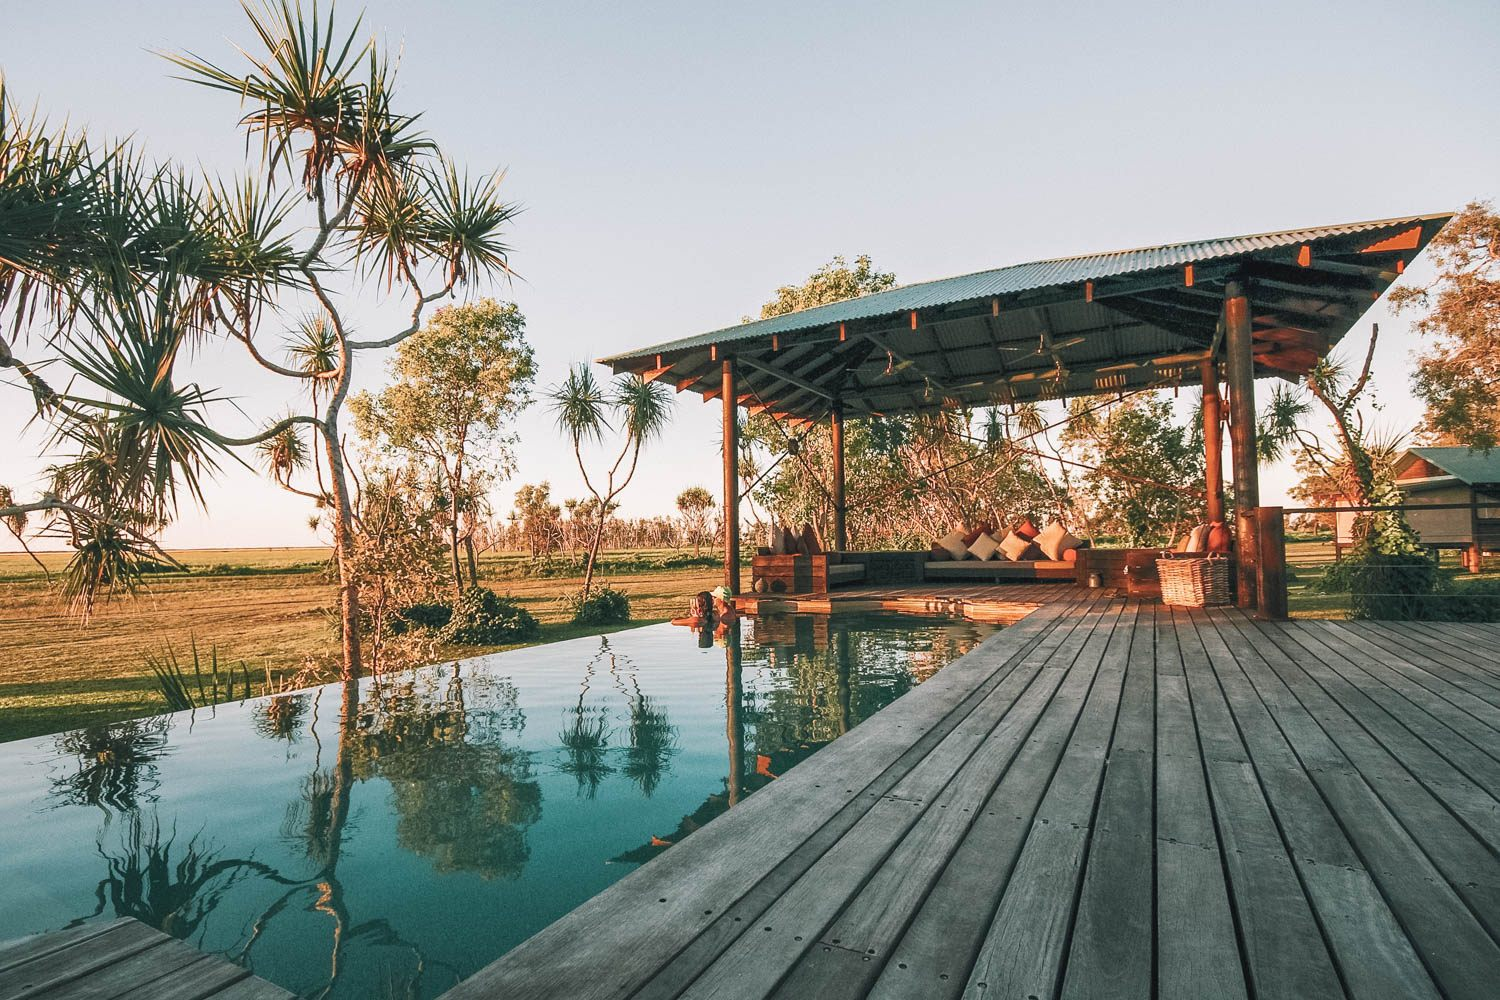 Where to stay in Kakadu National Park